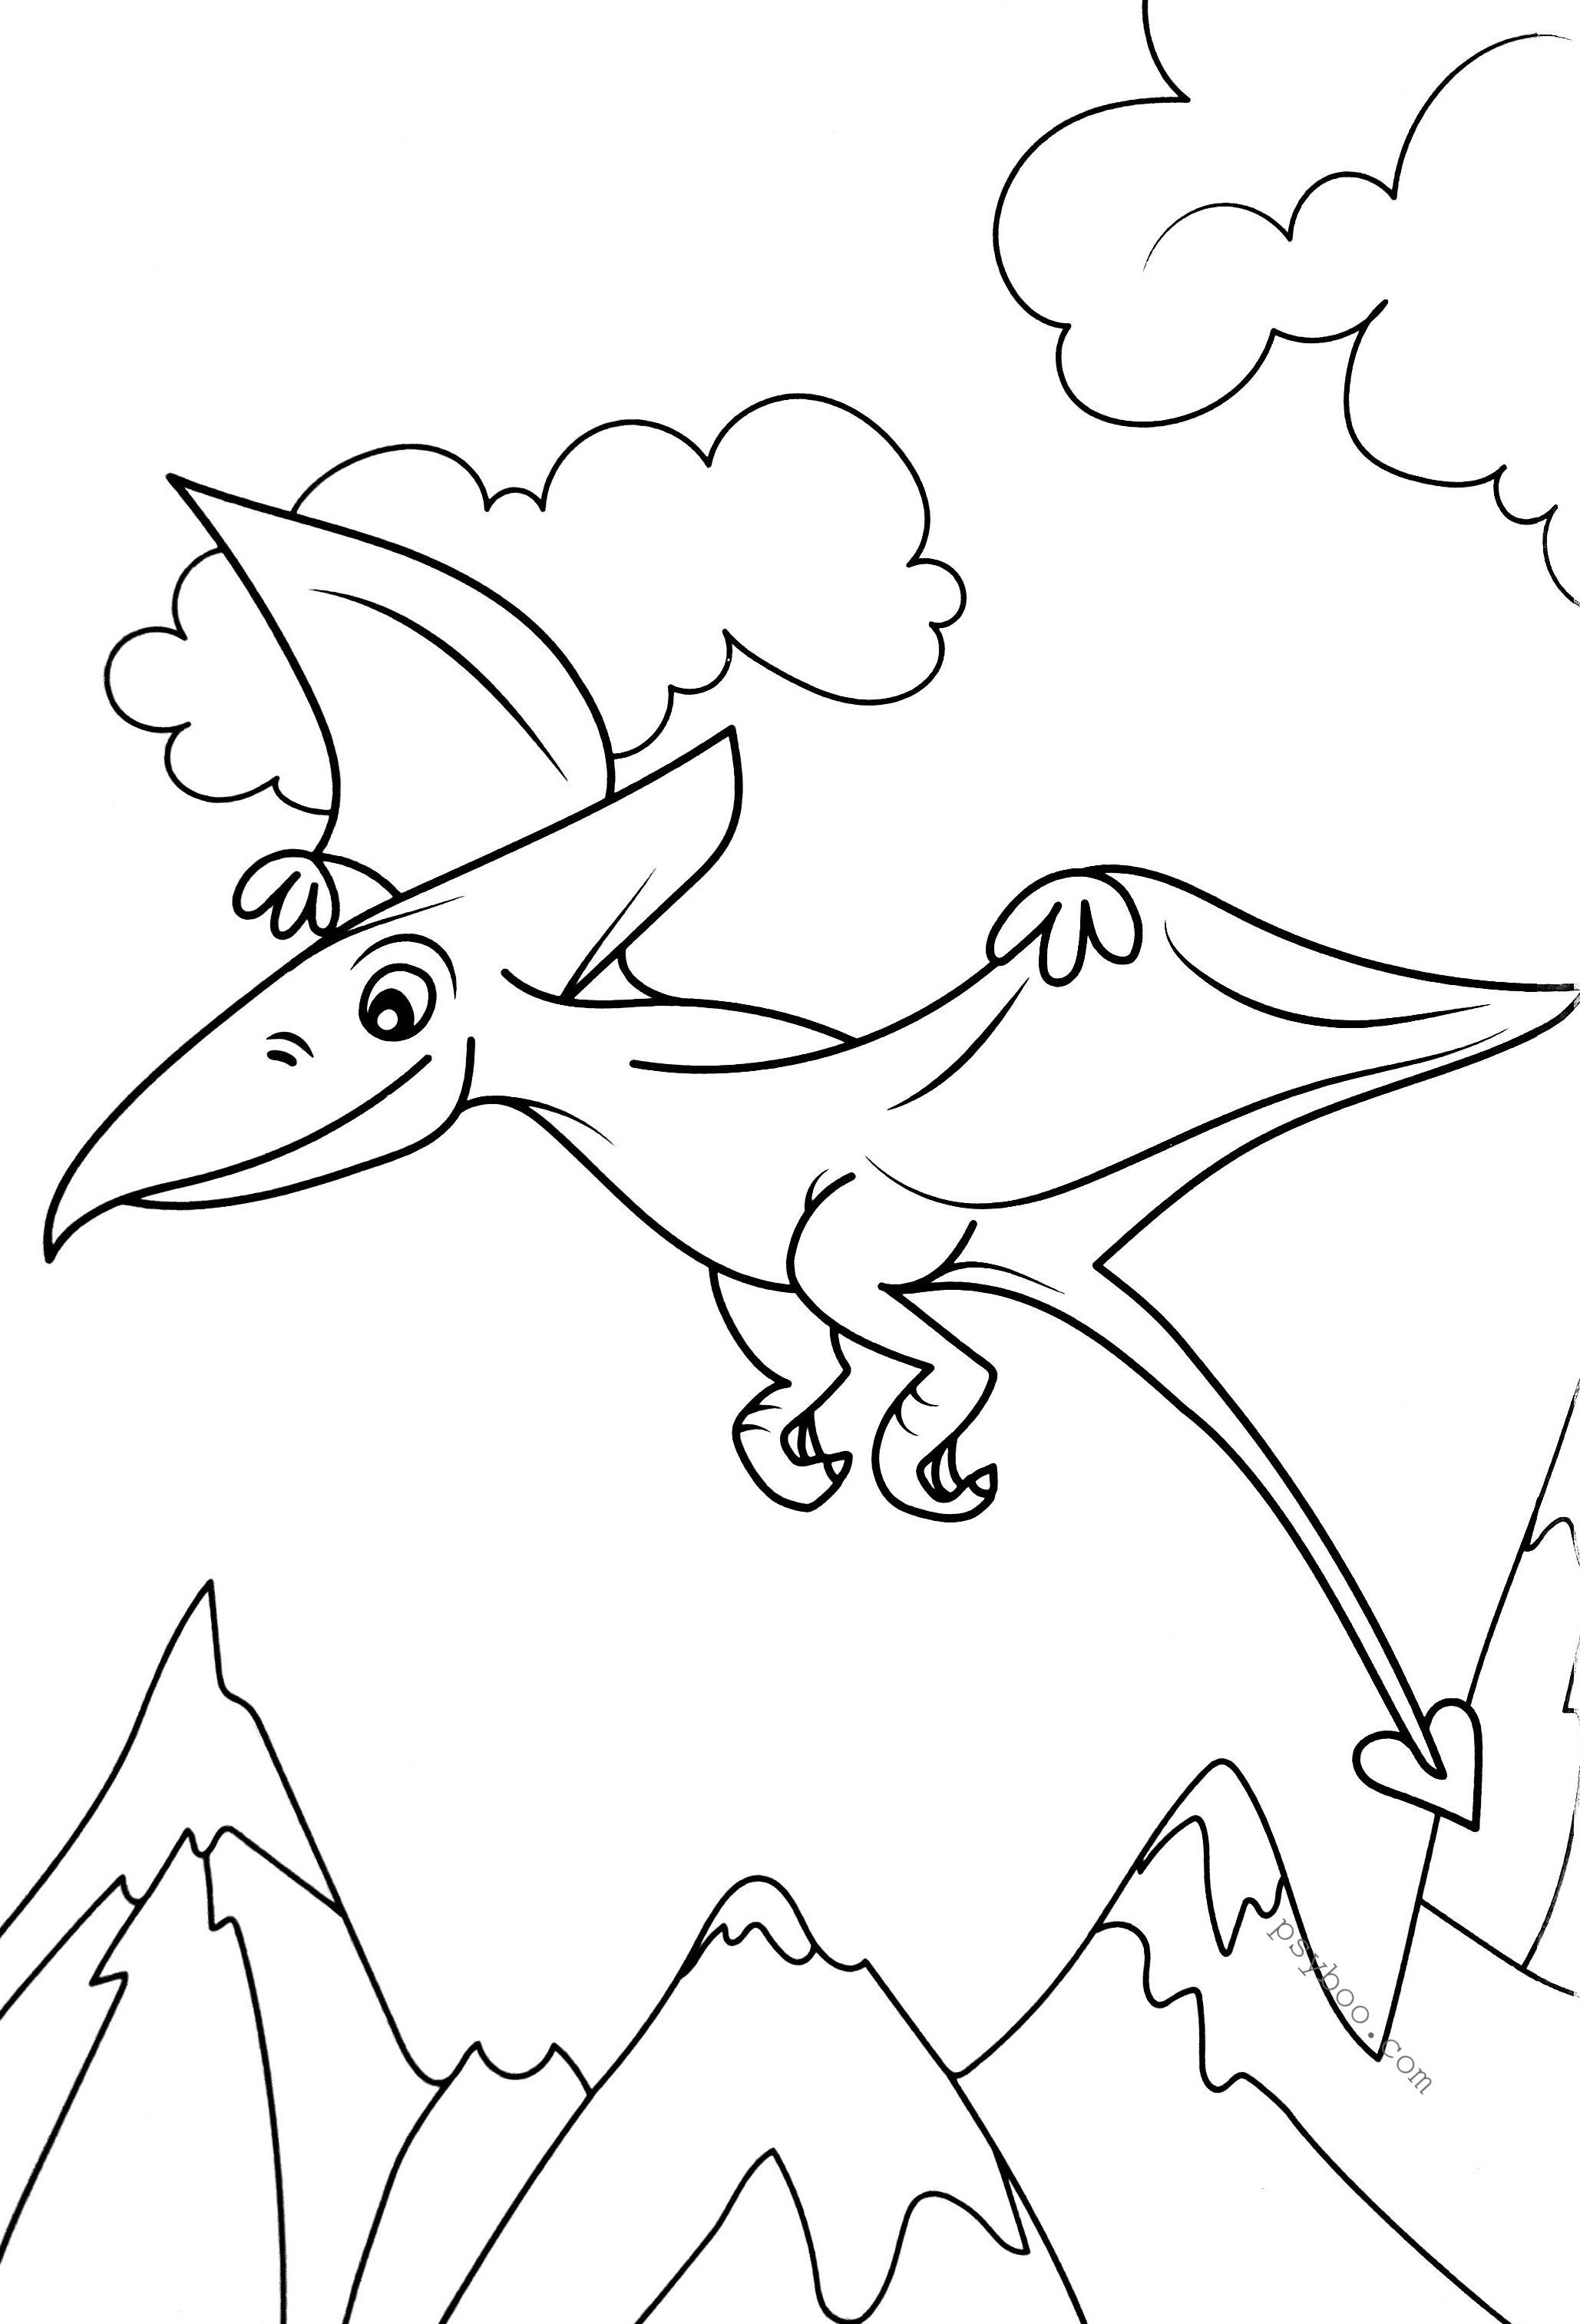 Little Dinosaur Pterodactyl Coloring Page For Free Dinosaur Coloring Pages Free Coloring Pages Coloring Pages